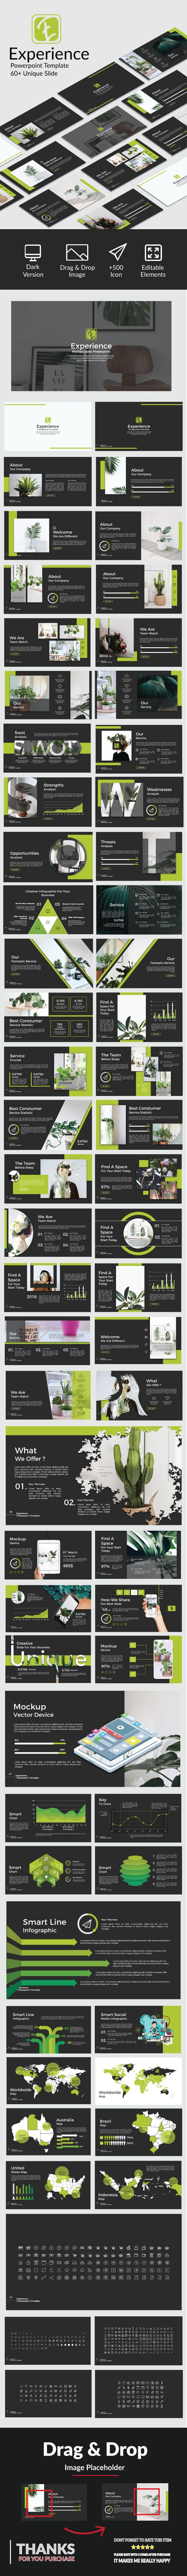 #Experience #Powerpoint - PowerPoint Templates #Presentation Templates